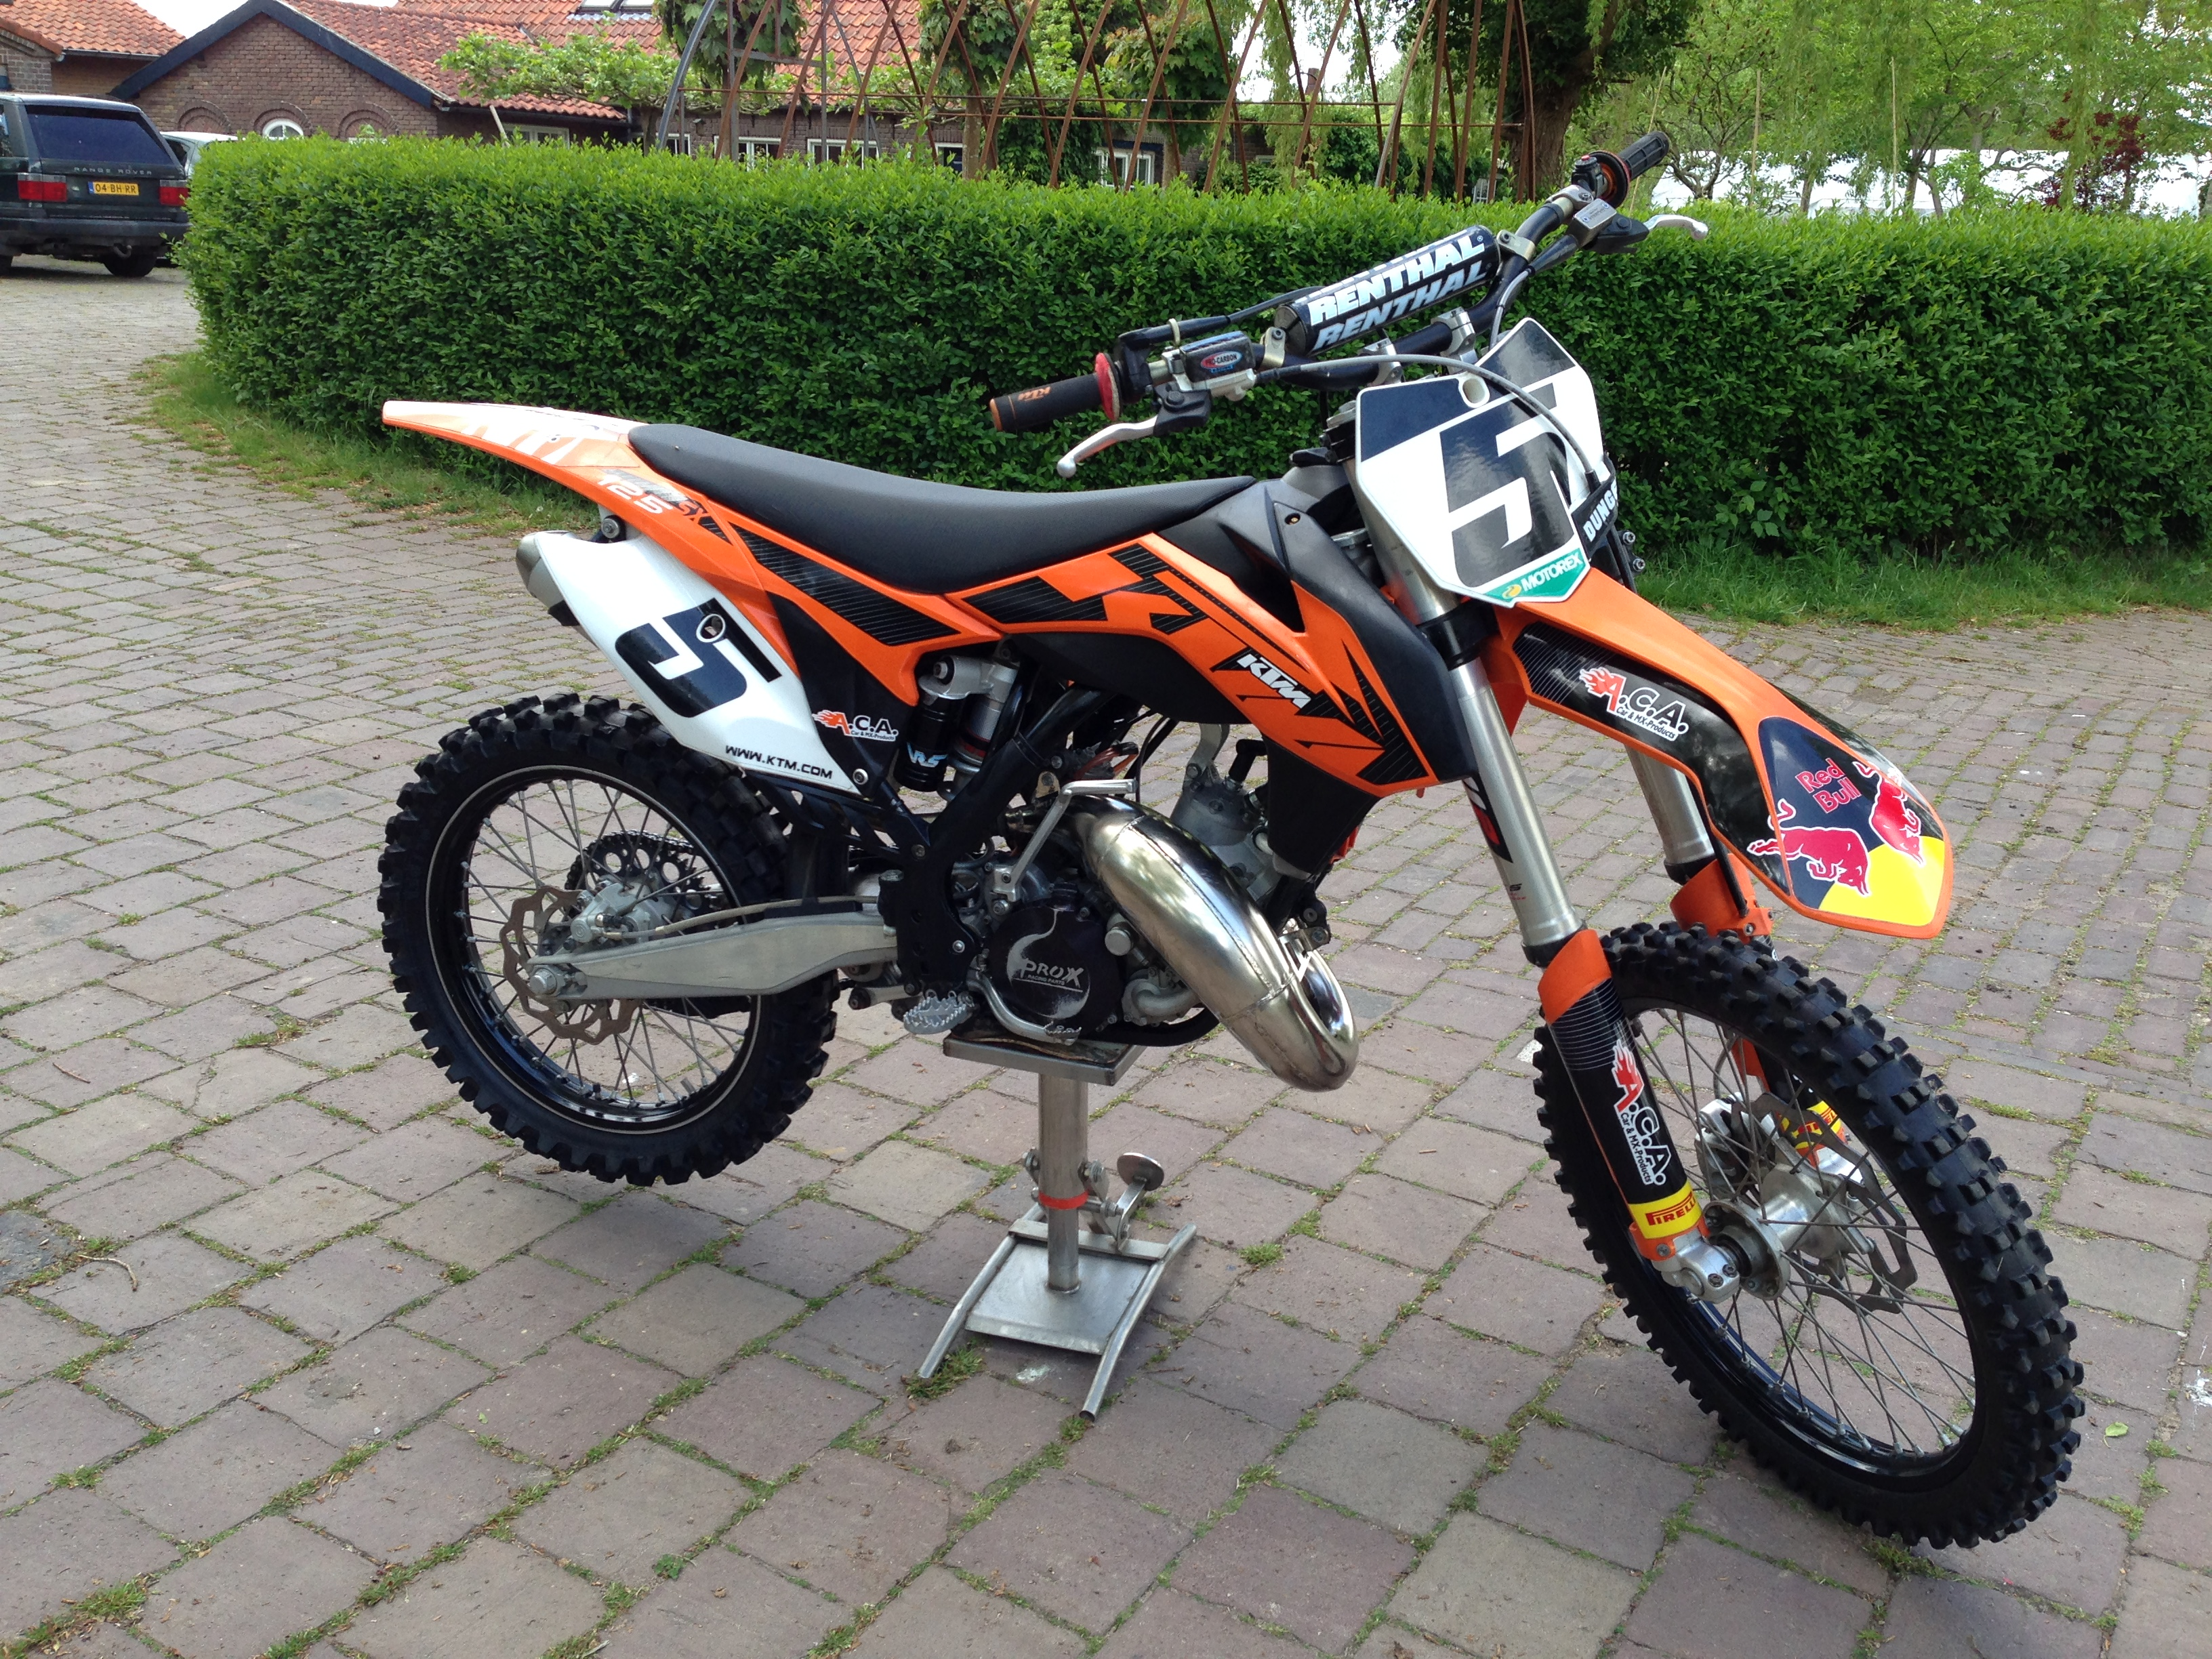 ktm 125 sx 2012 red bull kruijsbergen 4 39 s bike check. Black Bedroom Furniture Sets. Home Design Ideas